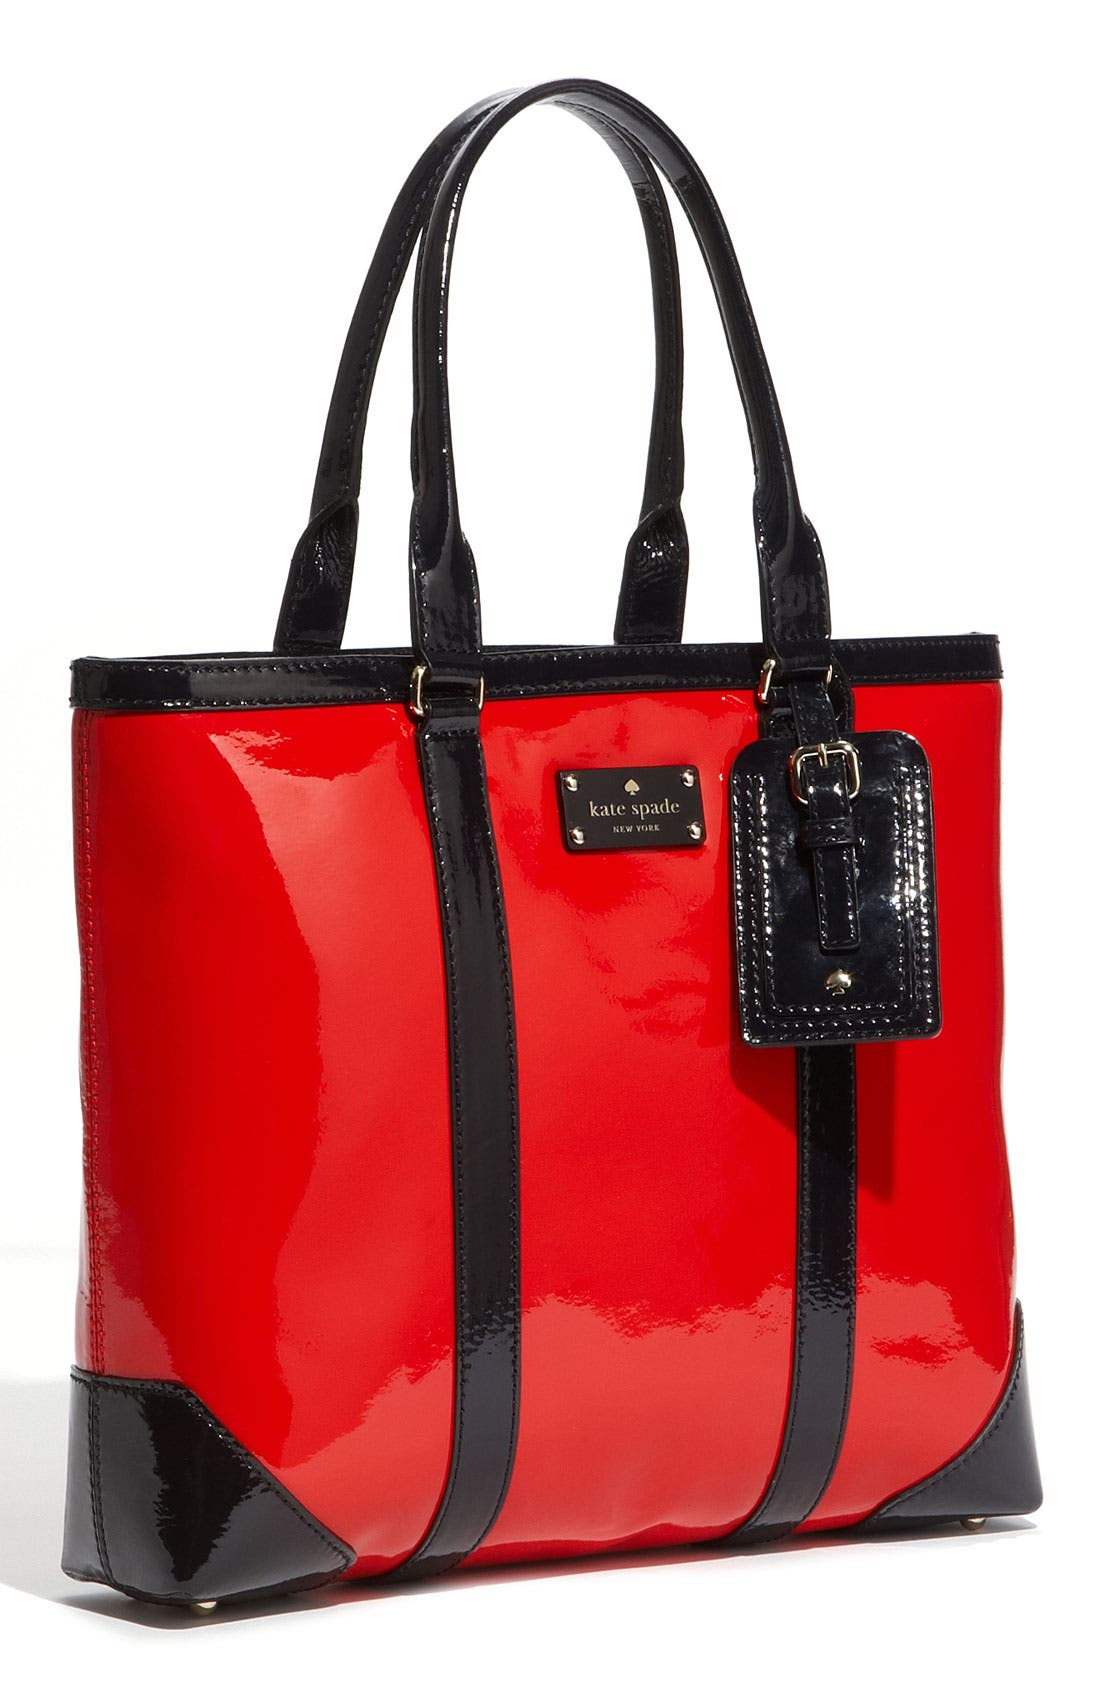 Alternate Image 1 Selected - kate spade new york 'barclay street - dama' patent leather tote